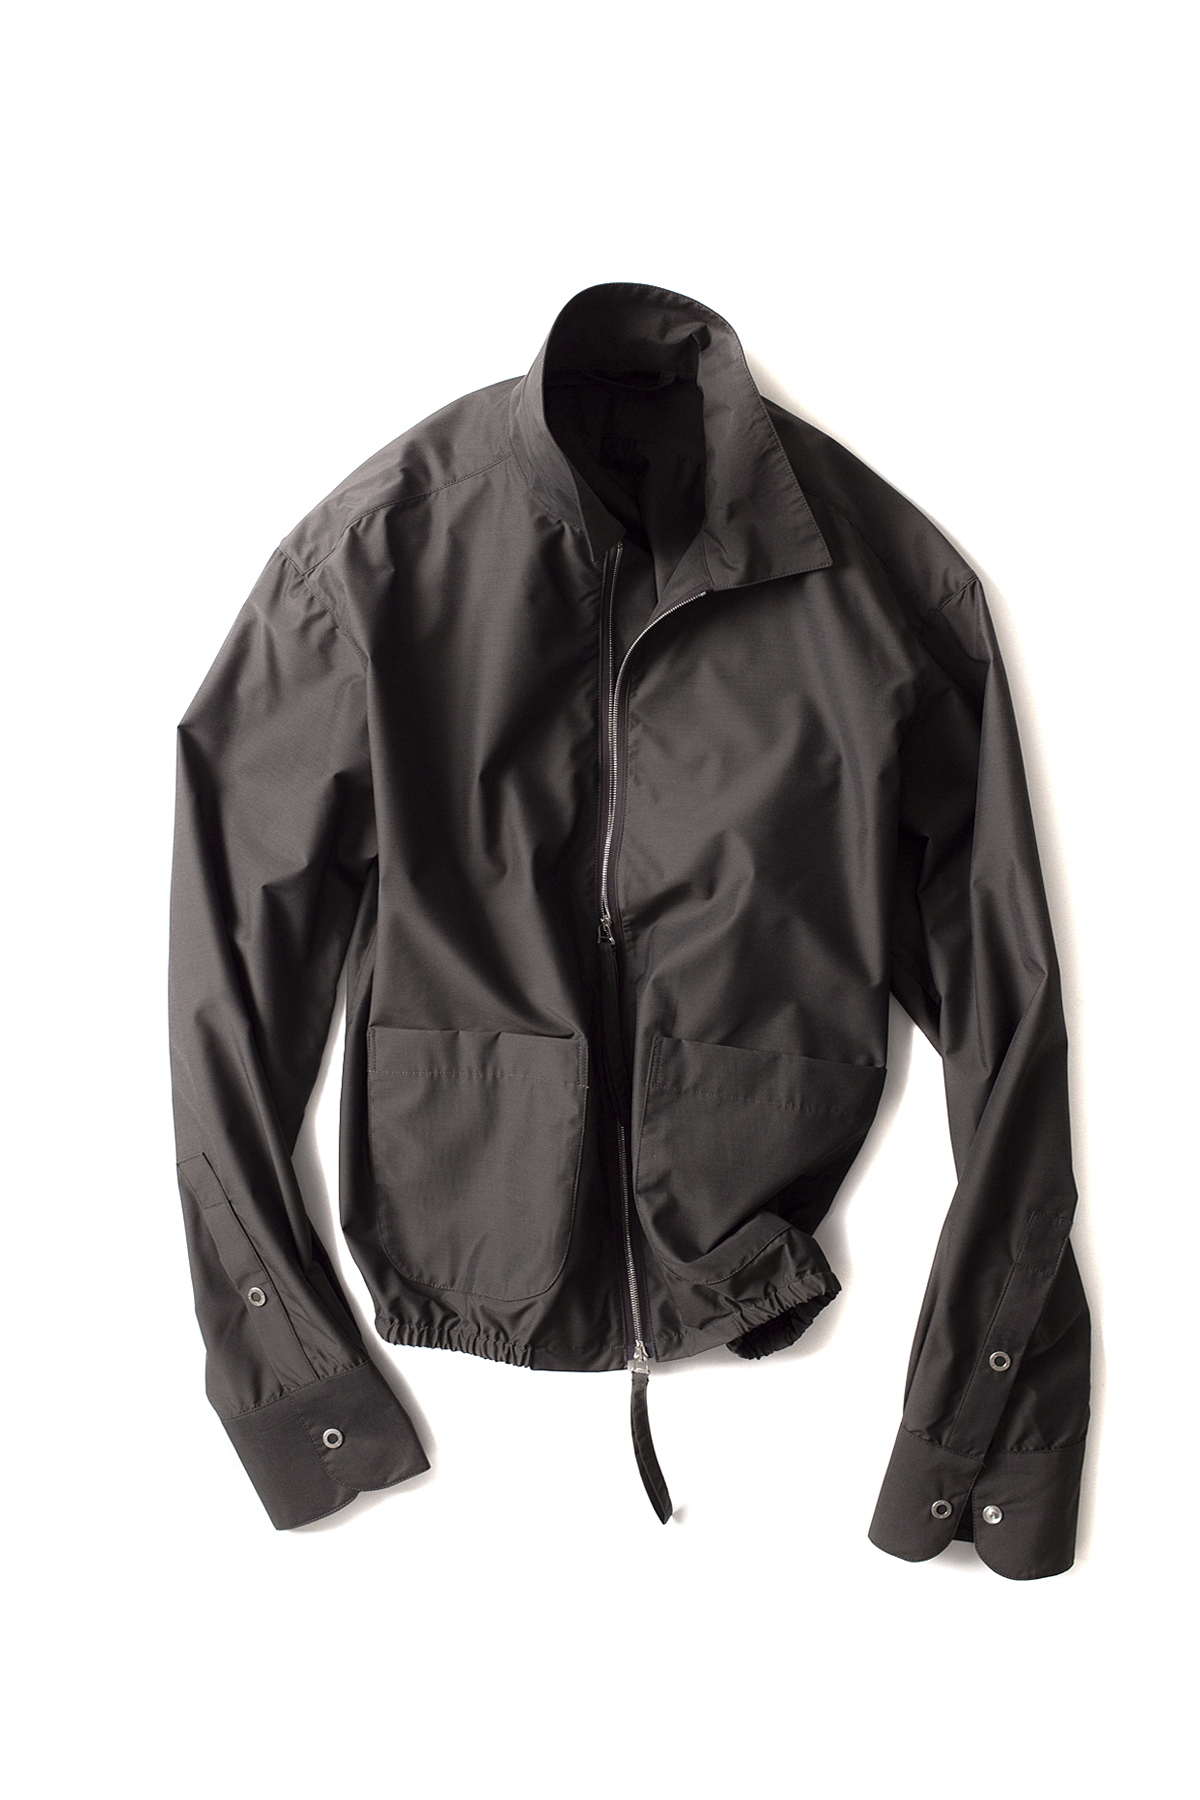 E. Tautz : Core Torquay Jacket (Brown)